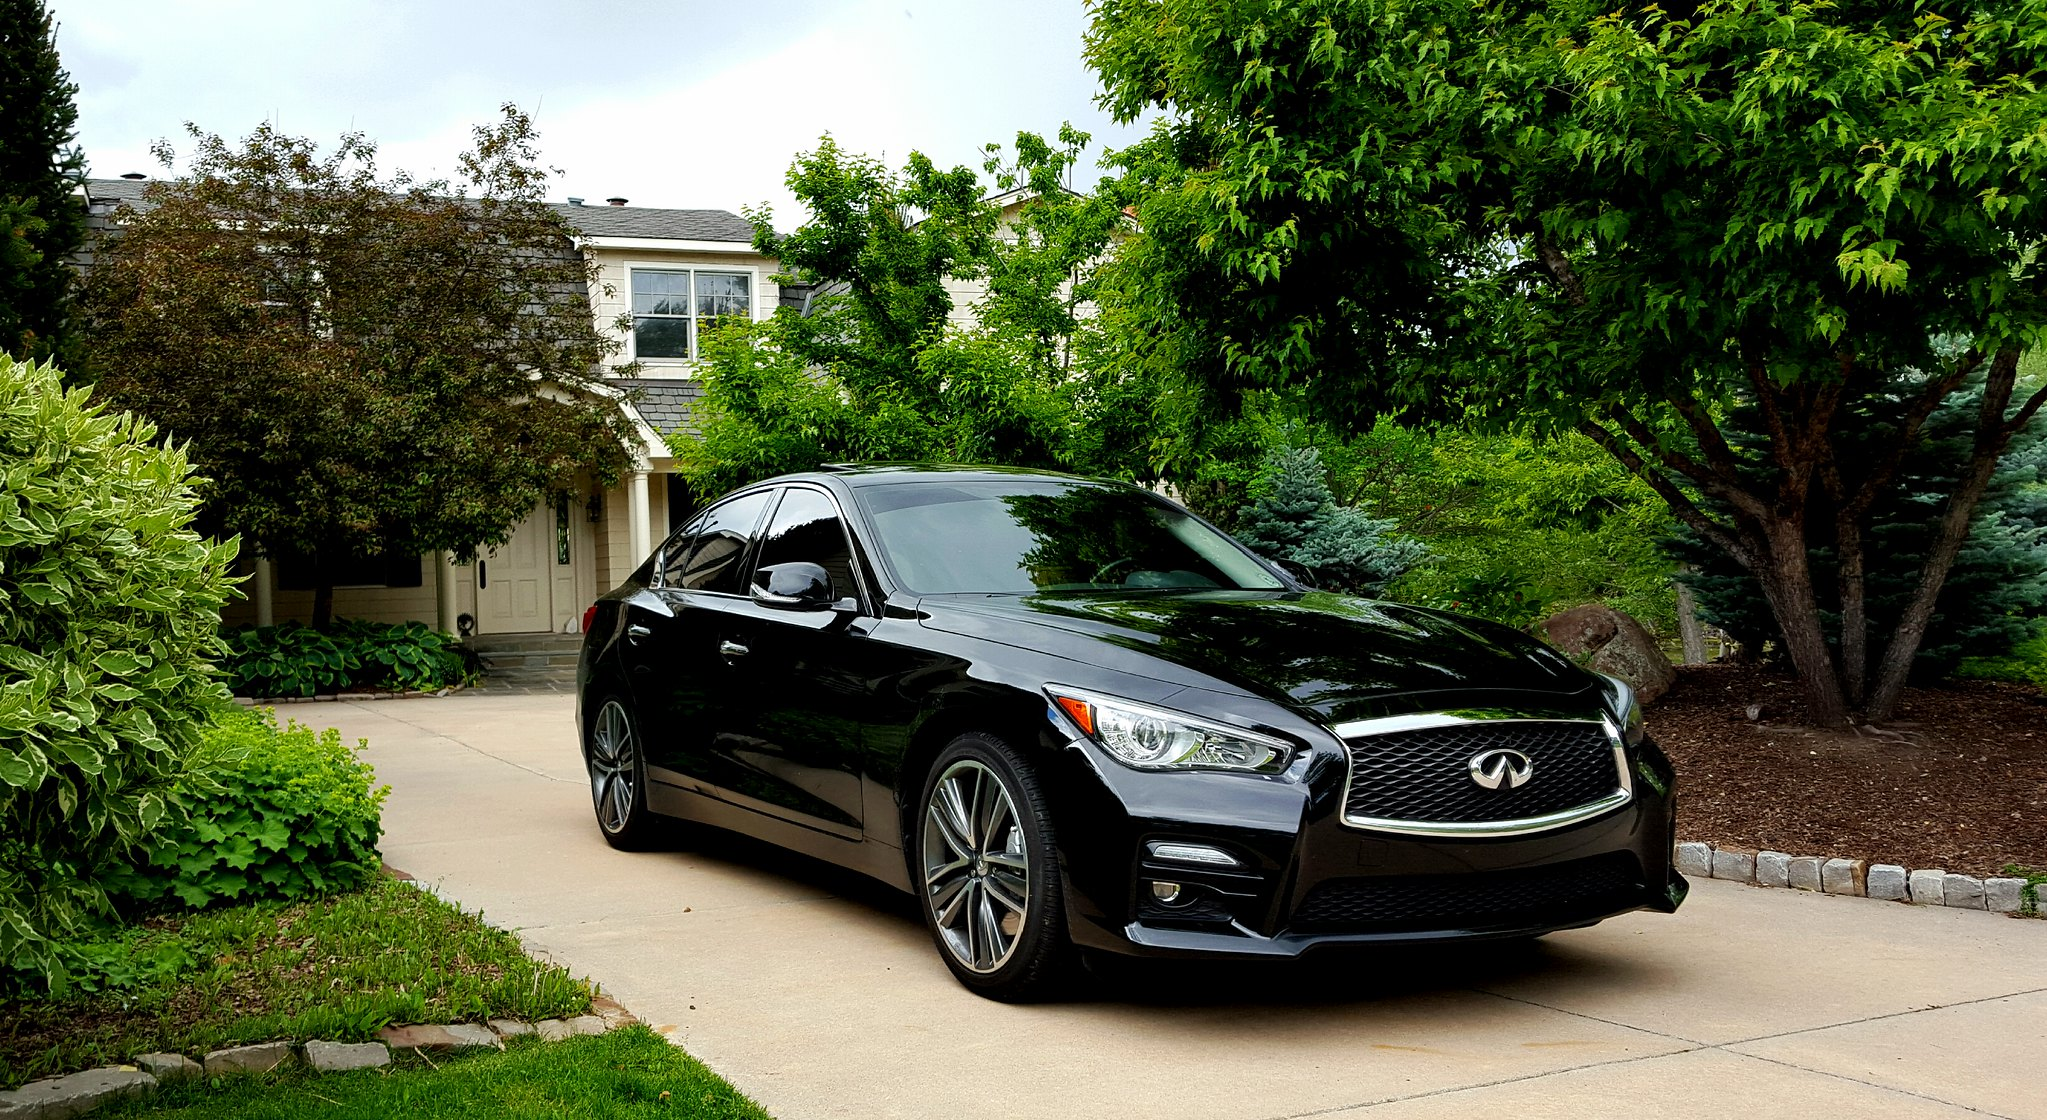 Infiniti Q50 Wallpaper Thread